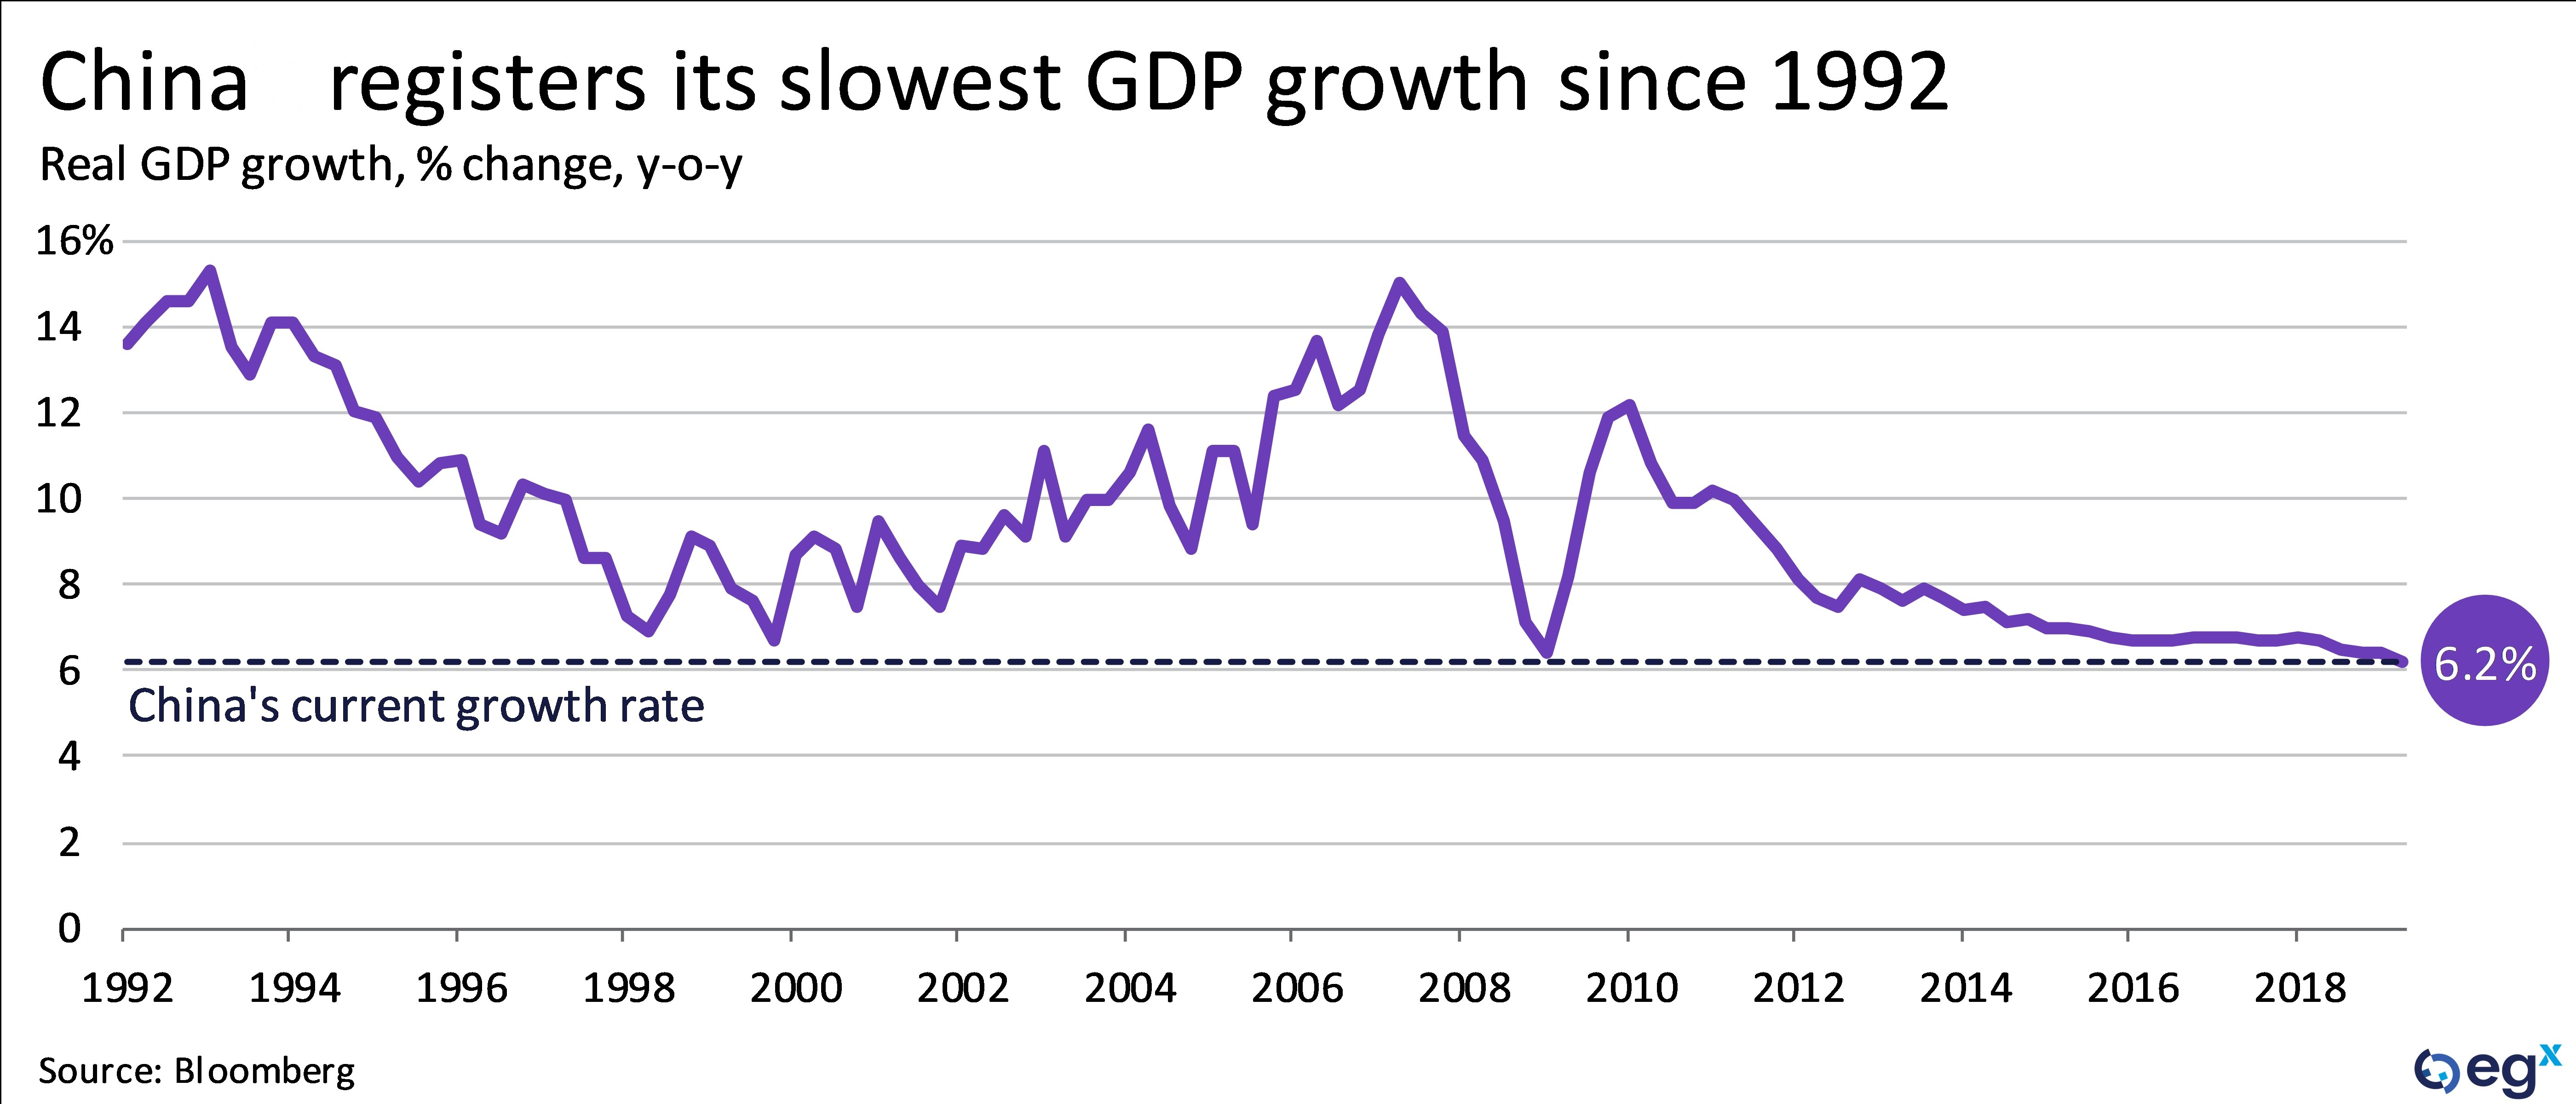 China registers its slowest GDP growth since 1992